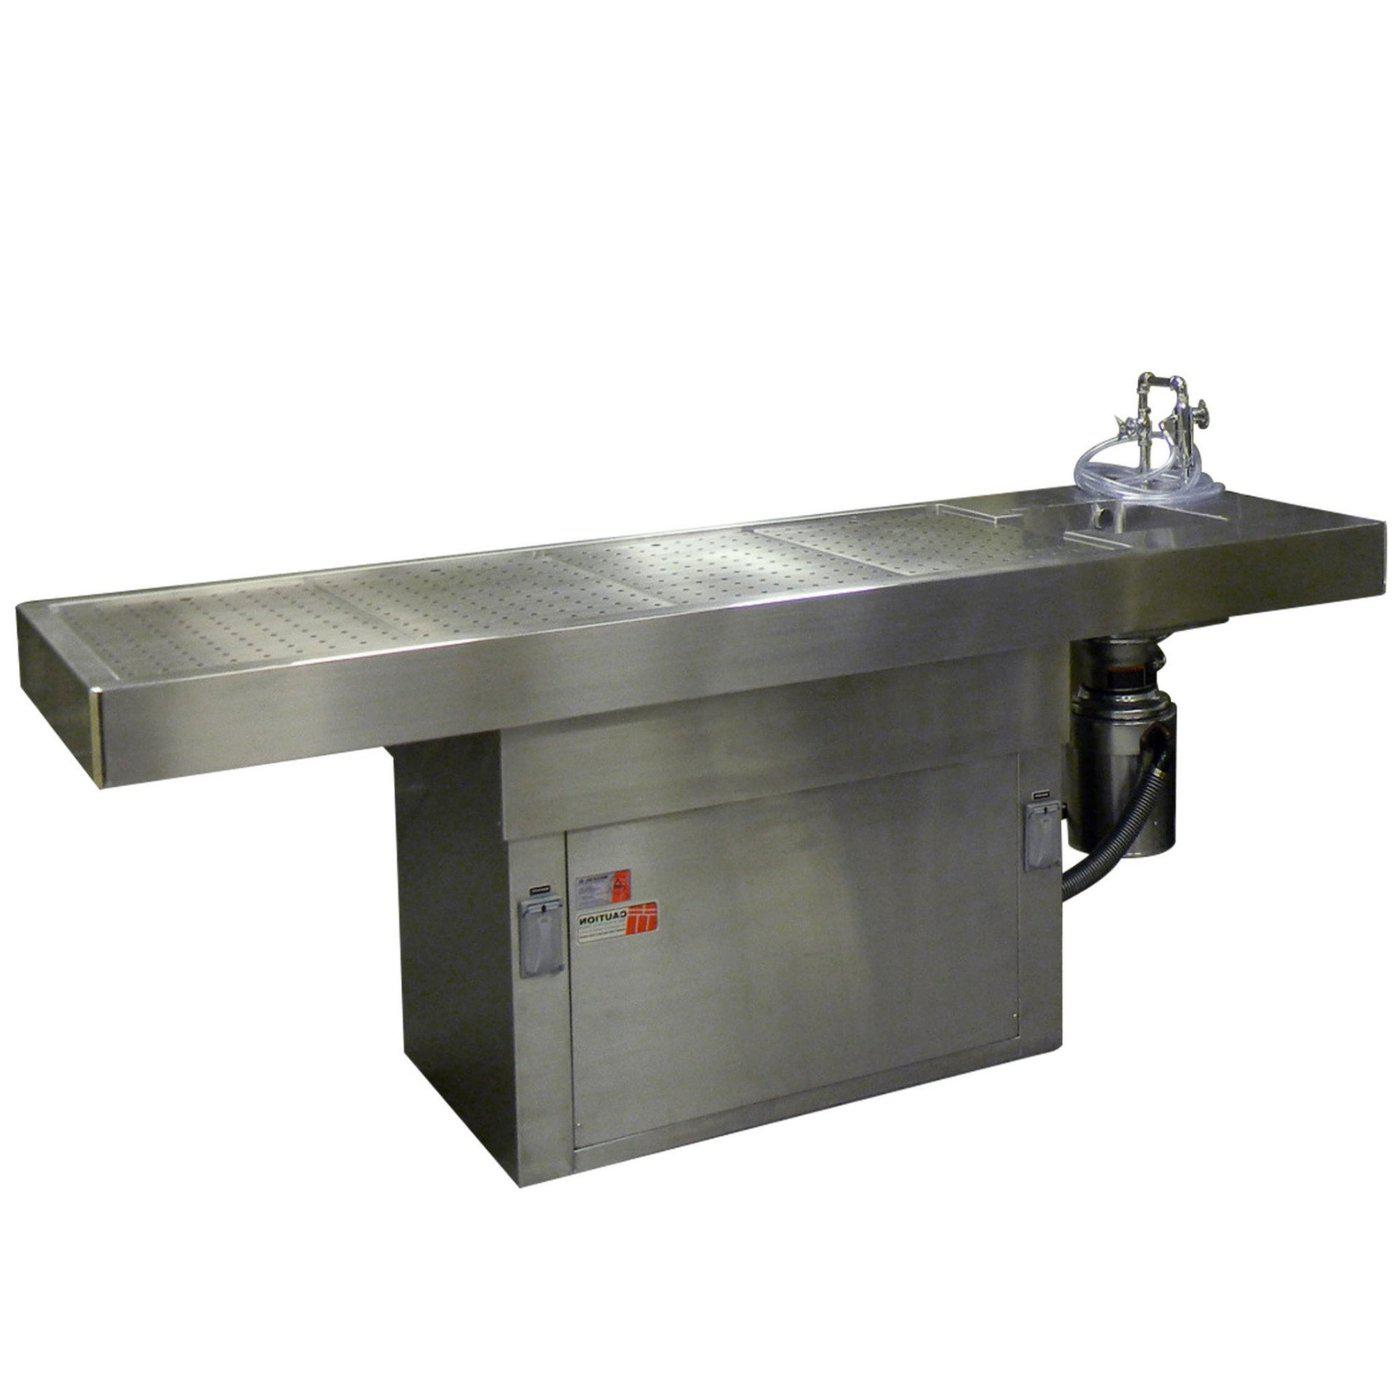 Adjustable Pedestal Autopsy Table-Pedestal Autopsy Tables-Mortech Manufacturing Company Inc. Quality Stainless Steel Autopsy, Morgue, Funeral Home, Necropsy, Veterinary / Anatomy, Dissection Equipment and Accessories